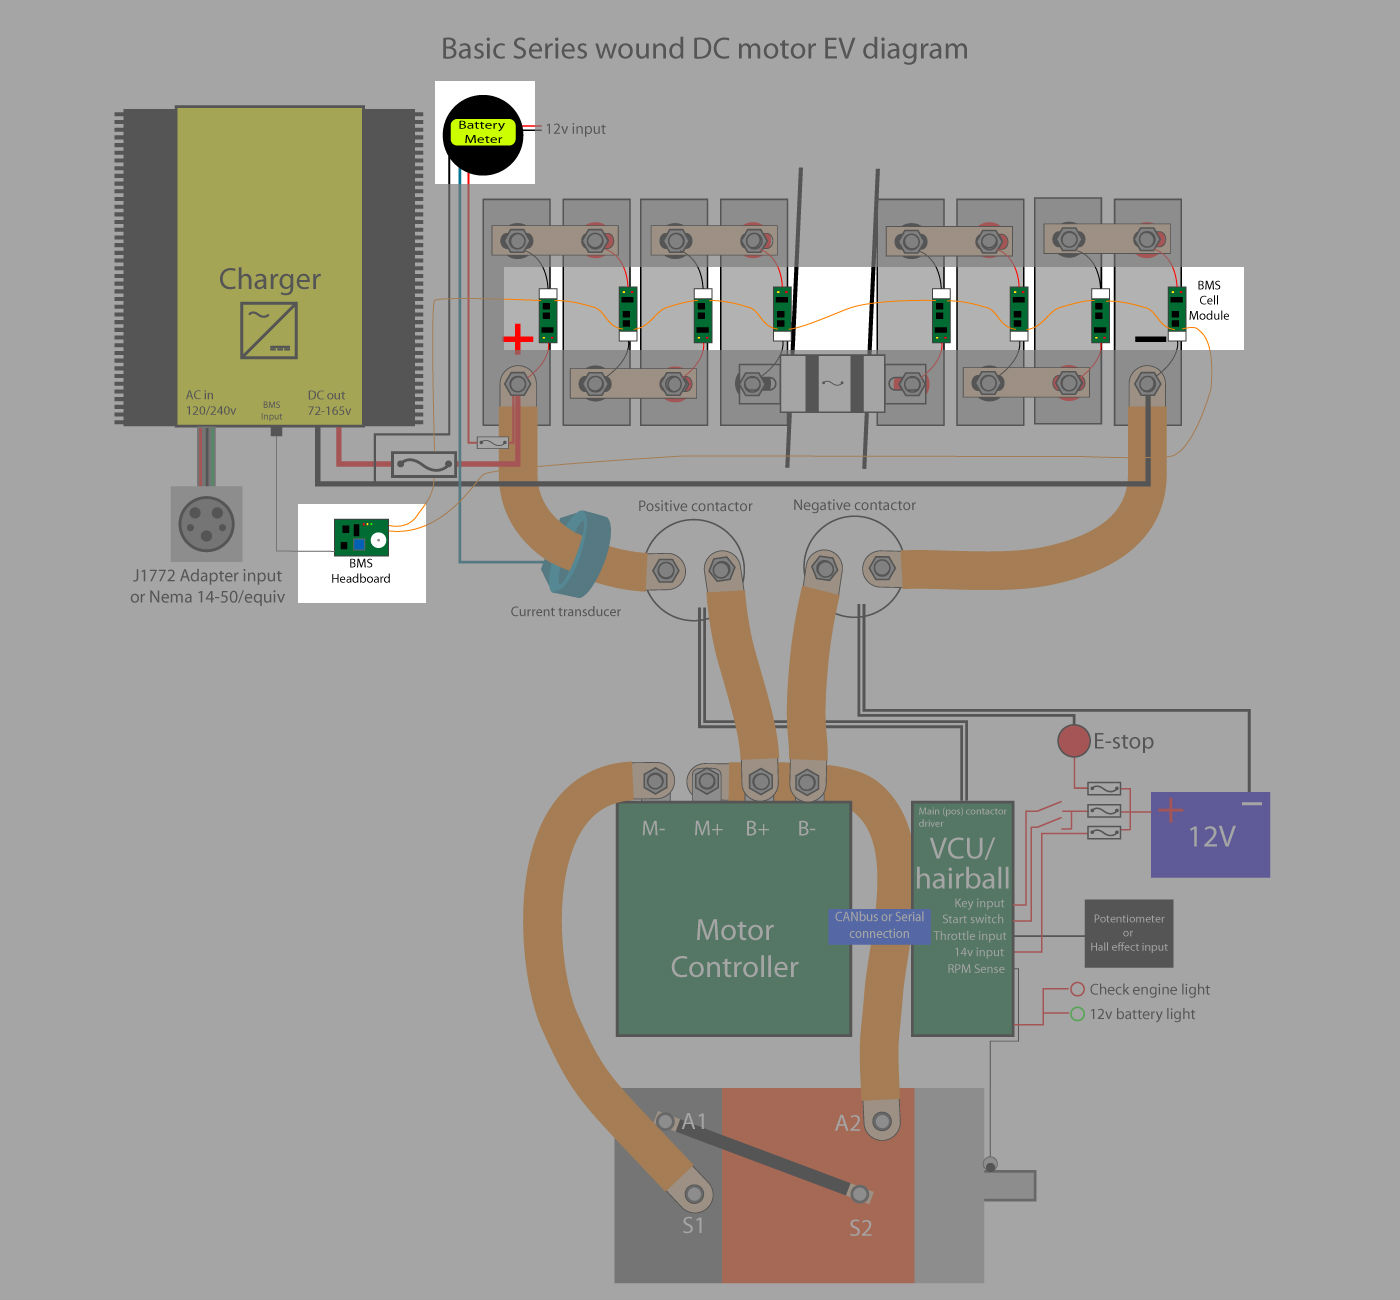 The Wiring Diagram Supplied With My Bms Interest T 20 1s4p 18650 37v Holder Case Battery Liion Pcm Protection Circuit Daves Diy Ev Conversion